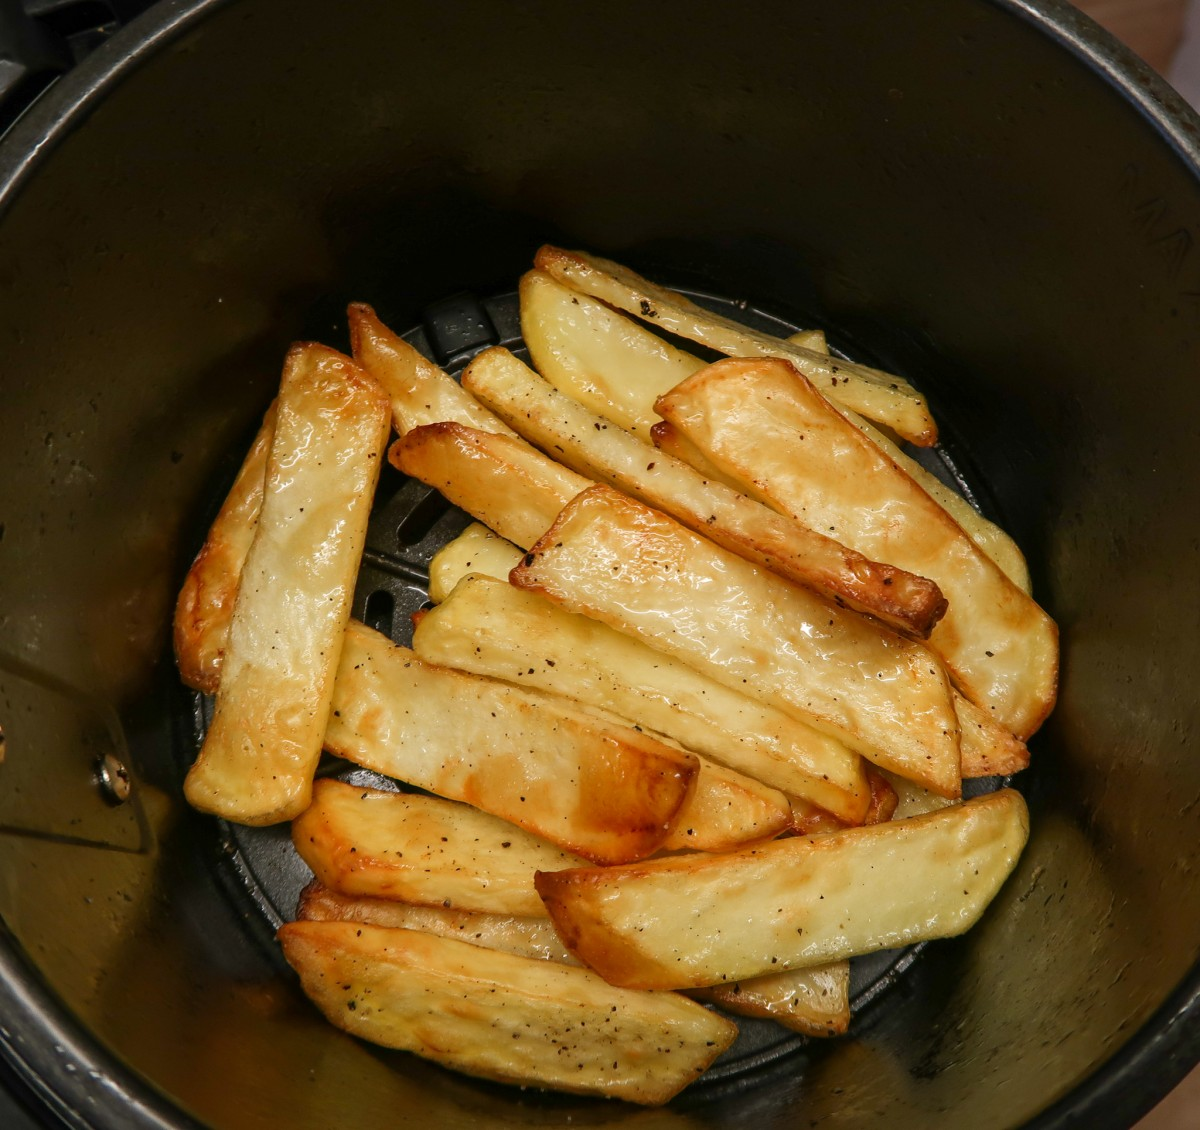 Chunky chips in the air fryer with salt and pepper after cooking